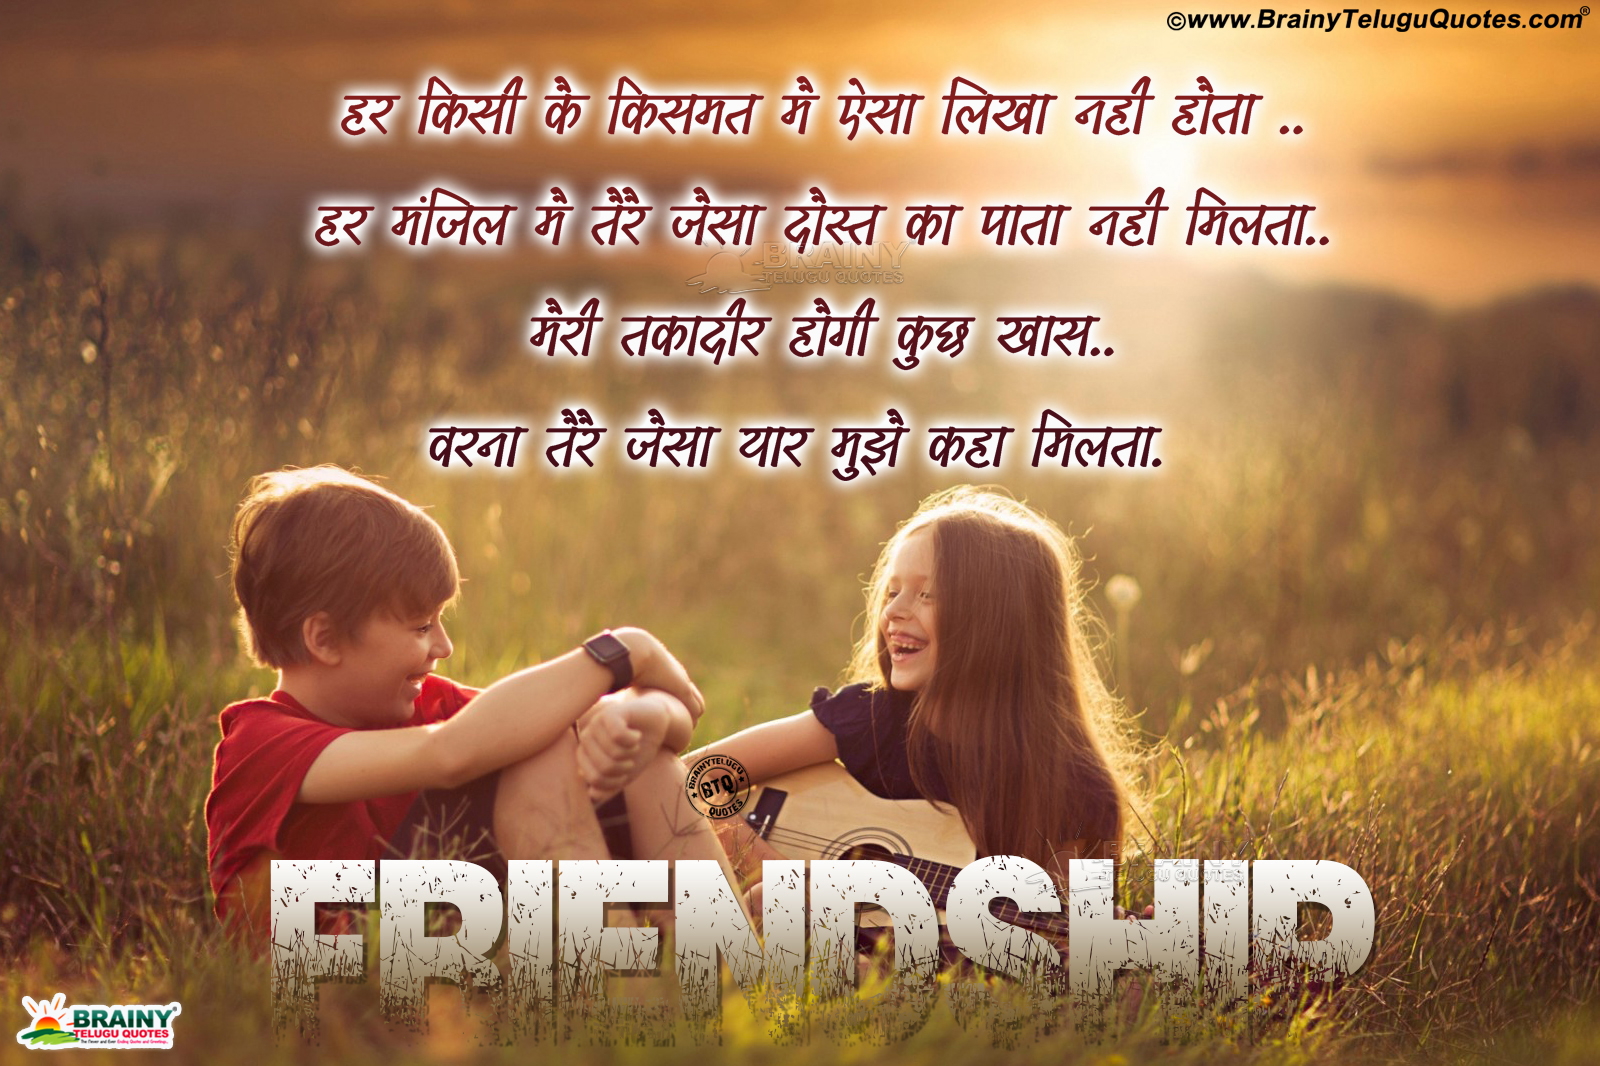 Whats App Hindi Shayari Best Friendship Quotes Hd Wallpapers Messages Online